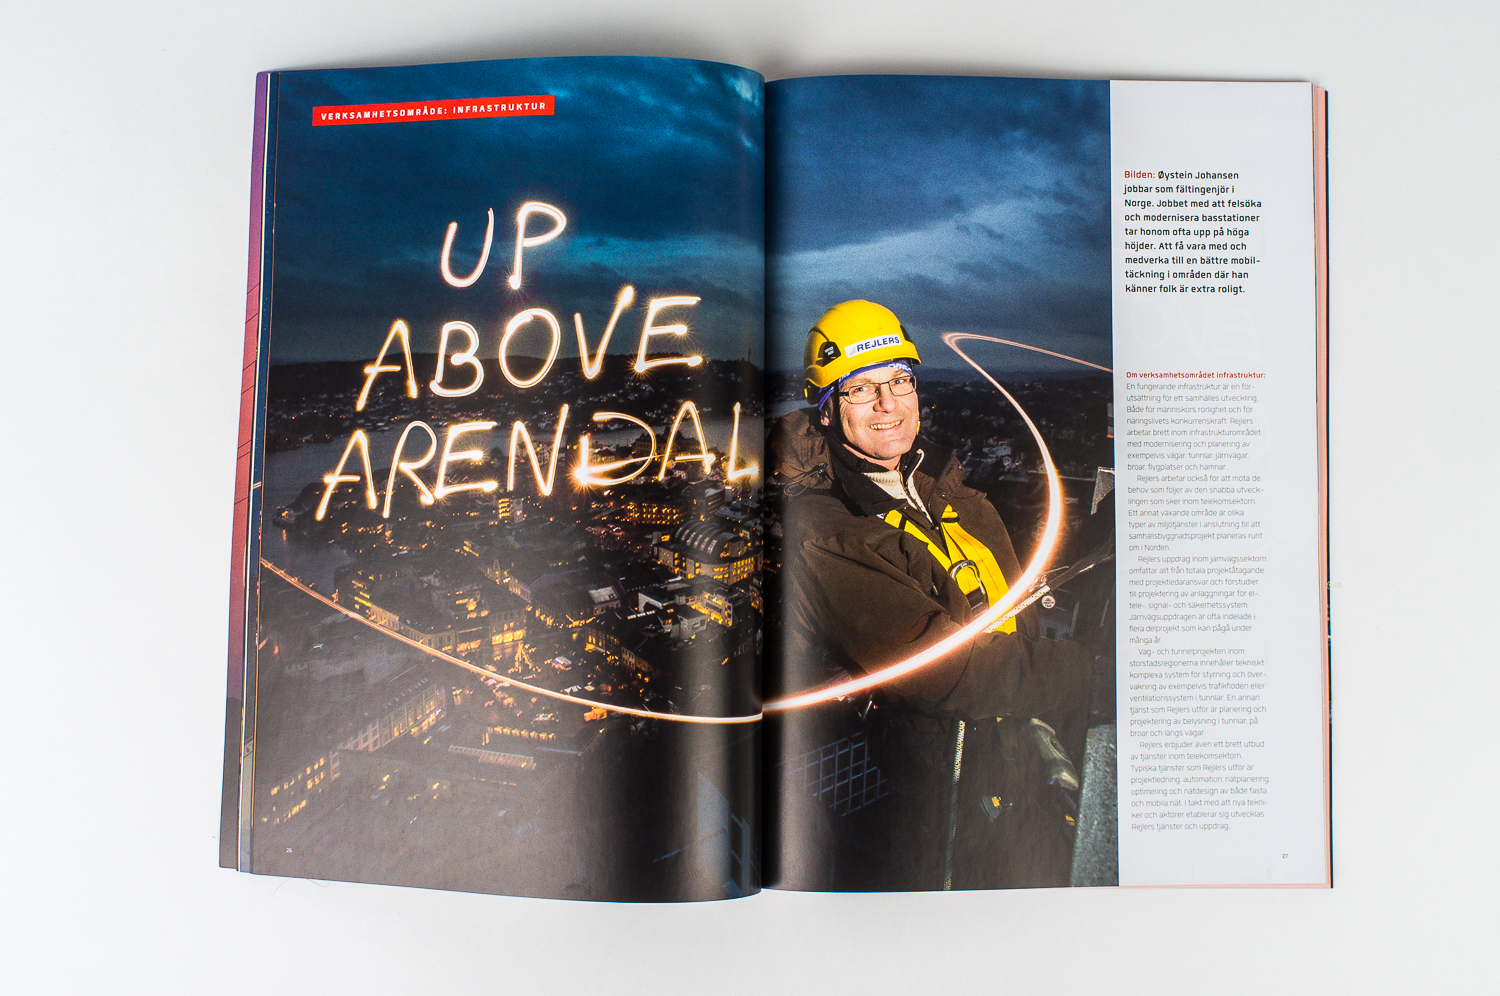 From Rejlers ABs annual review, 2013. Photo of telecom personel climbing a 70m mast overlooking the town of Arendal. Published in 2014 in swedish and english versions.